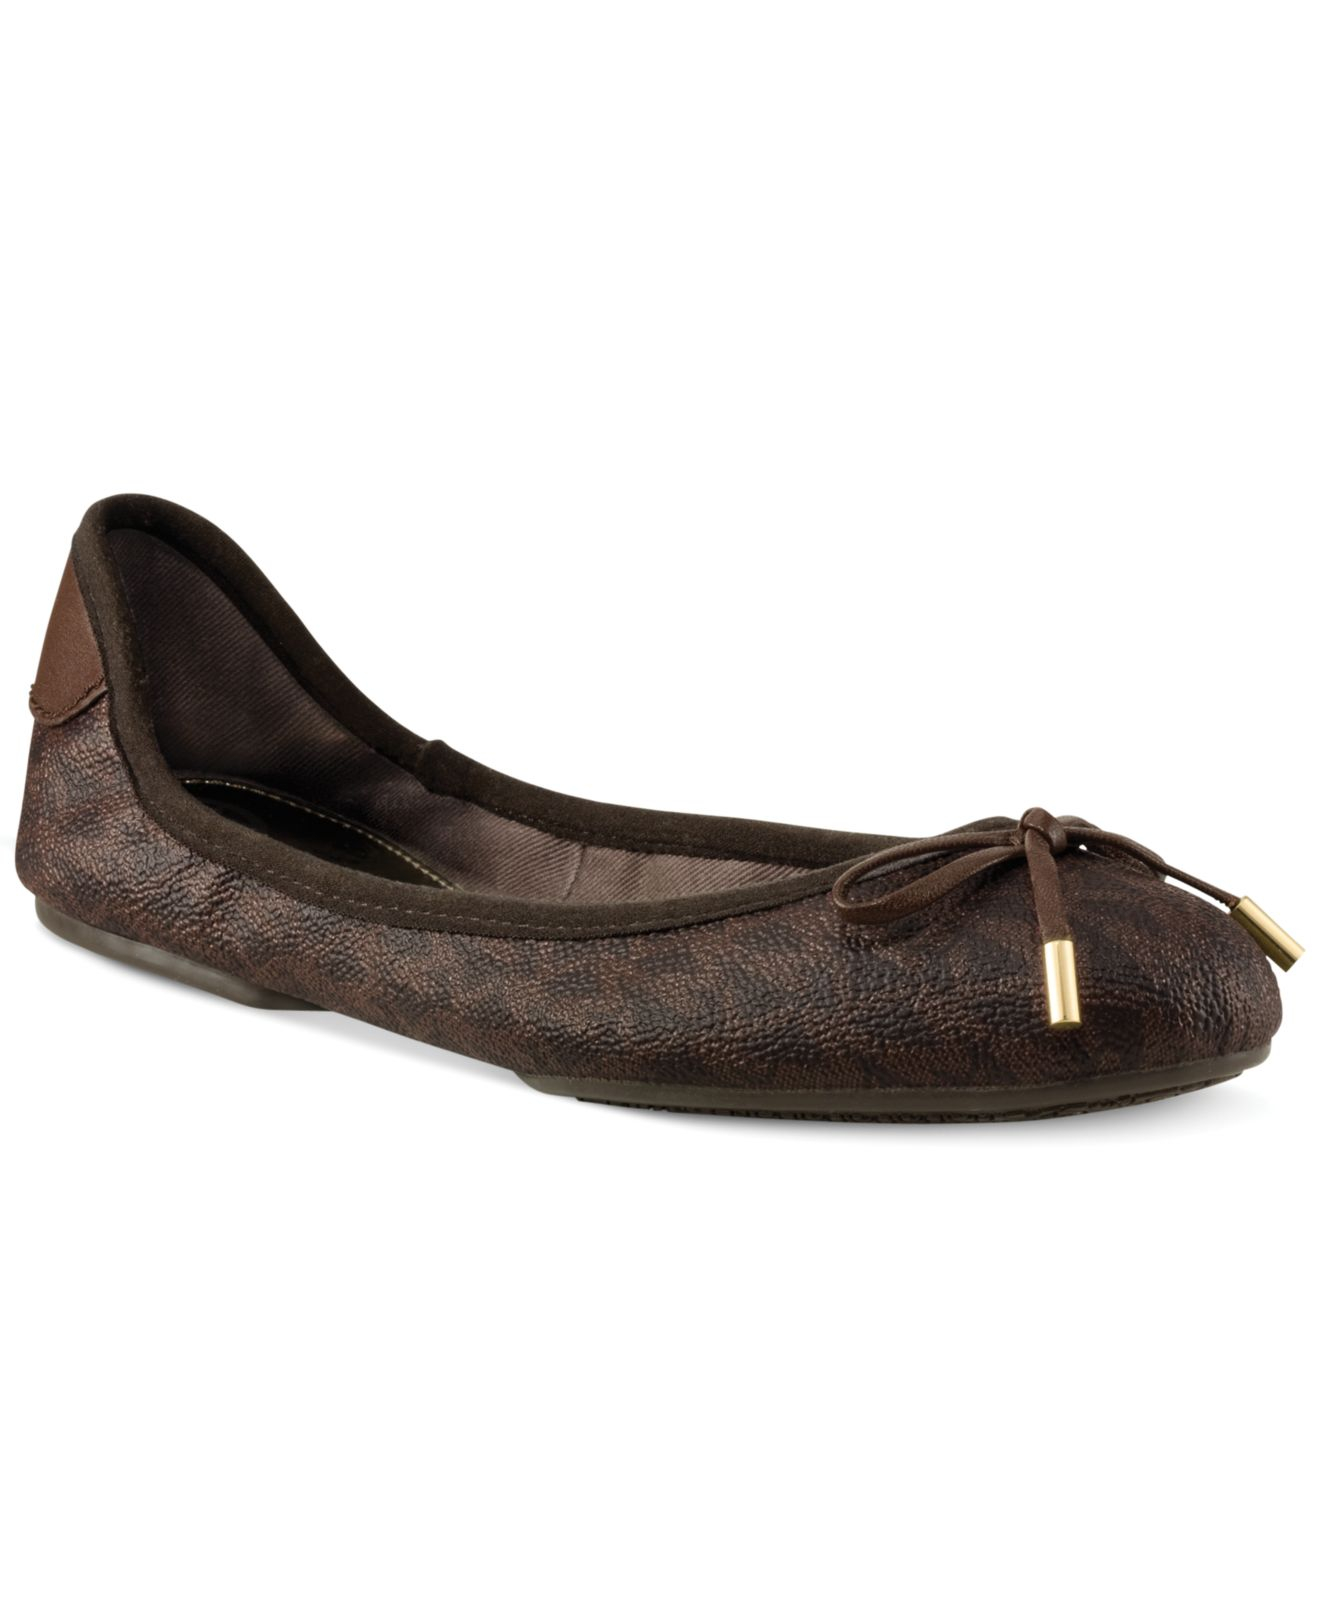 3715842e4236 Lyst - Michael Kors Michael Mk City Ballet Flats in Brown